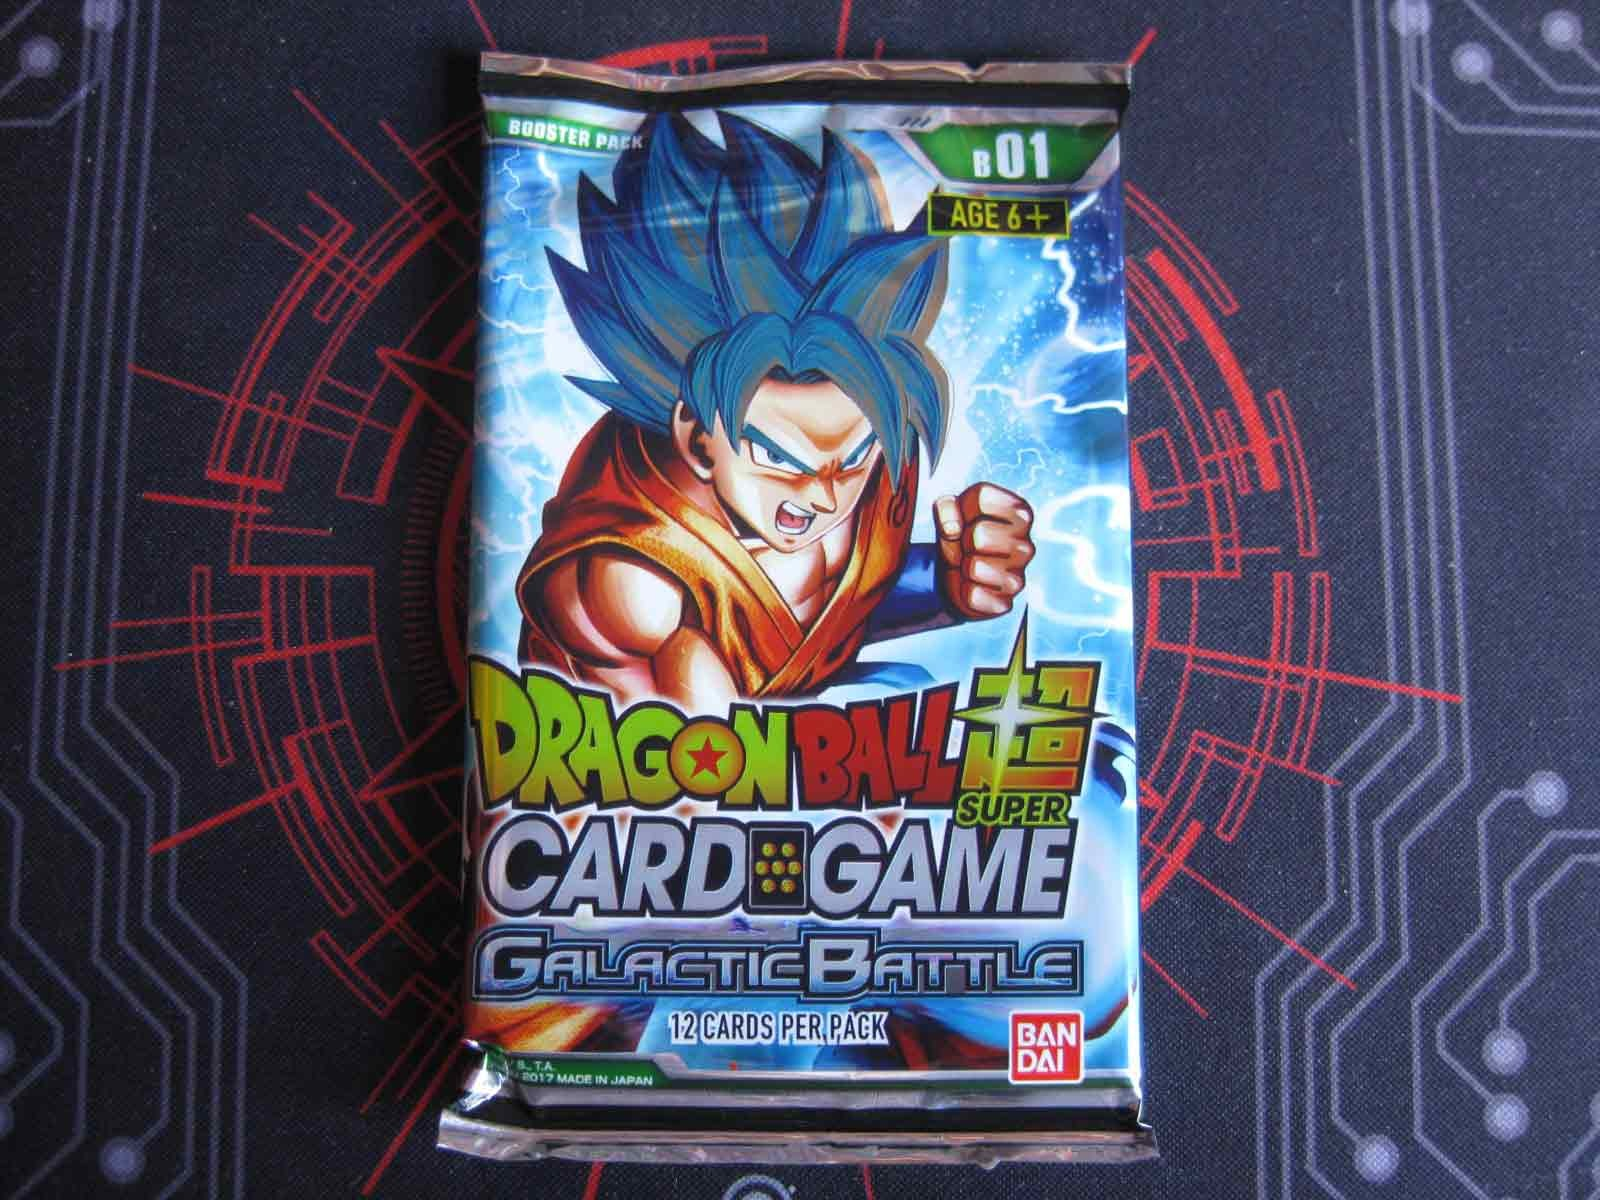 Dragon Ball Super Booster Pack: Galactic Battle B01: Goku SSGSS Pack